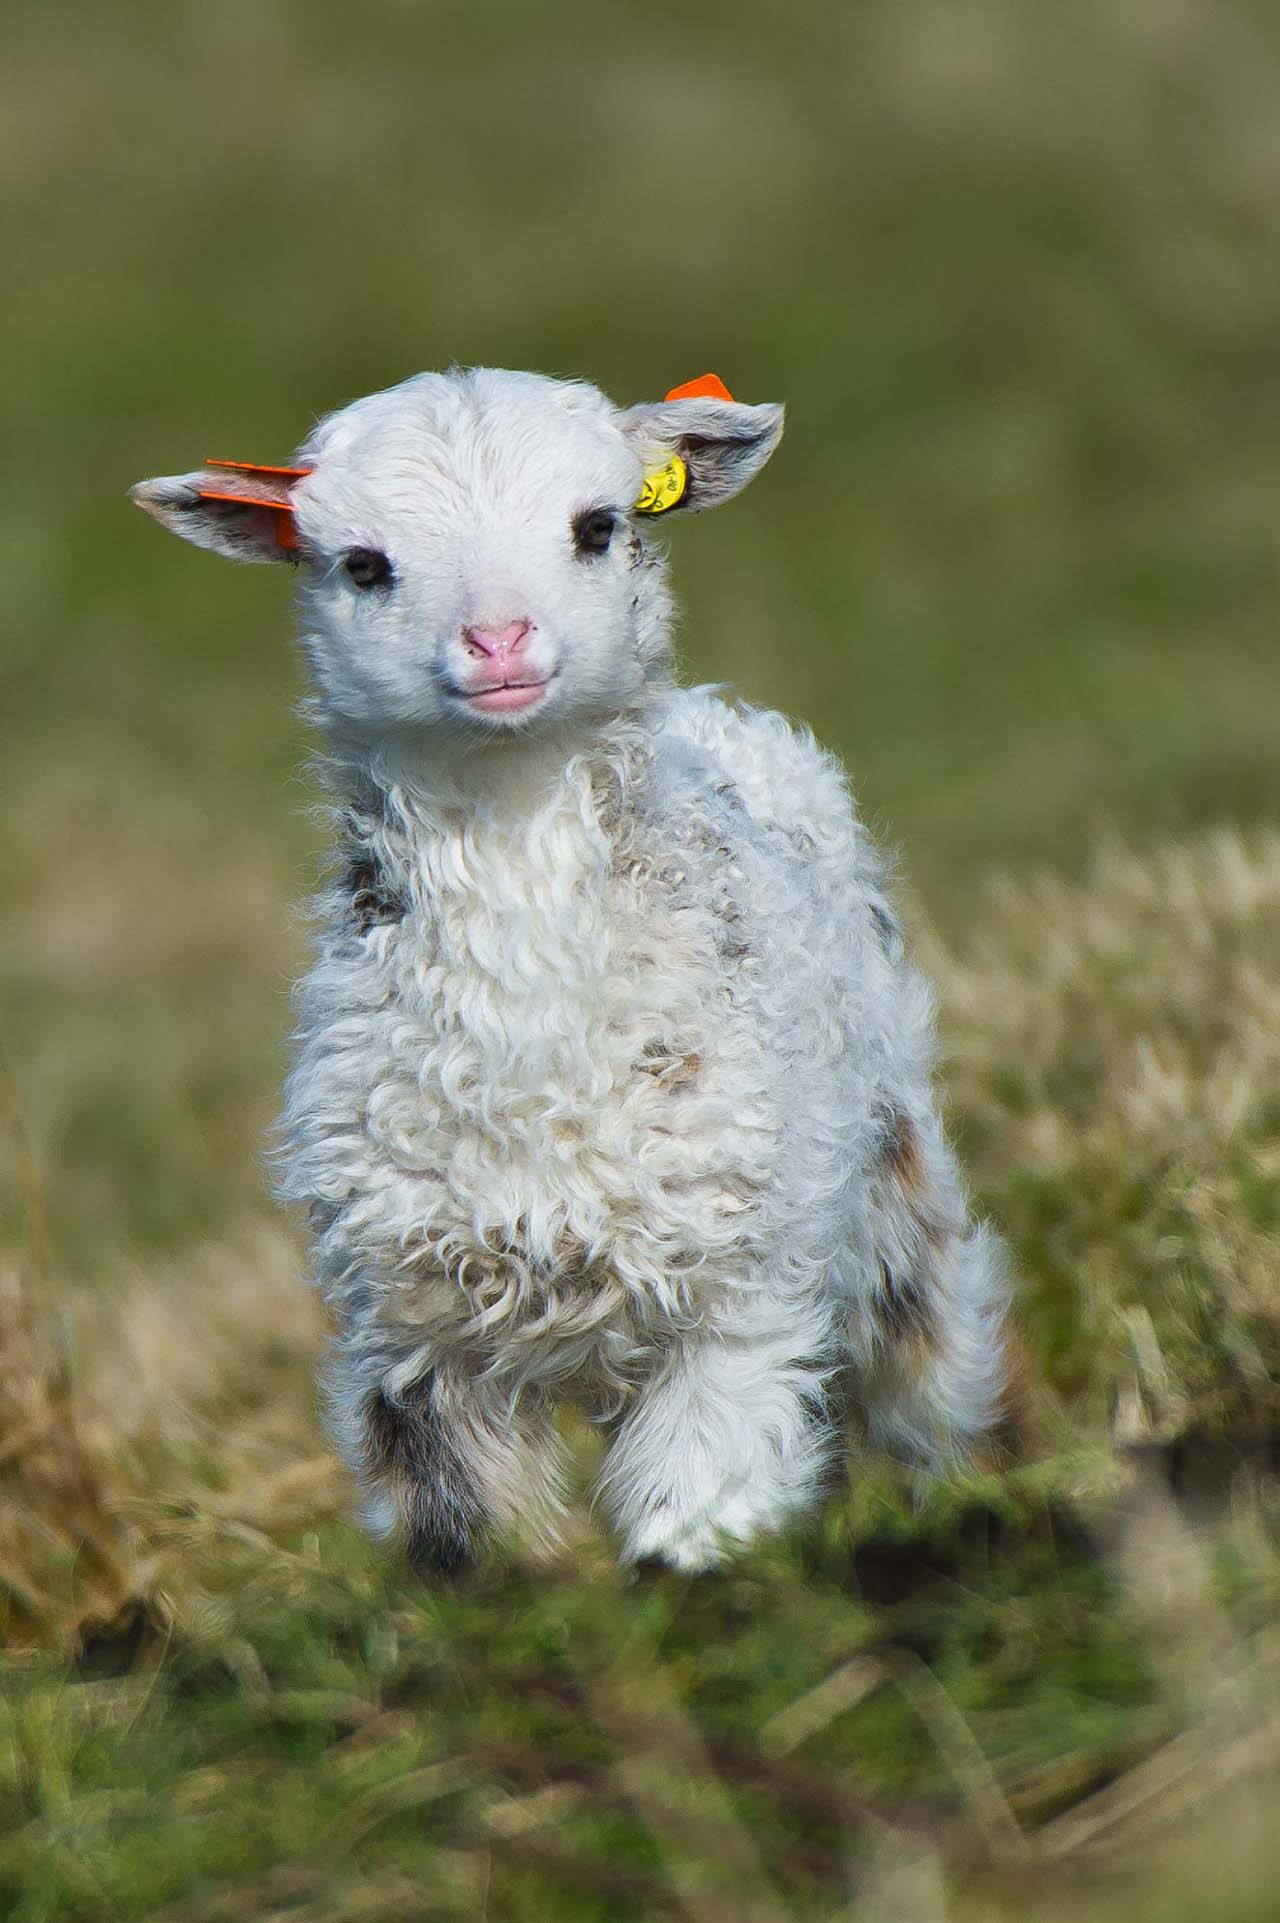 27 Adorable & Tiny Animals That Are Too Cute To Handle #1: Lamb